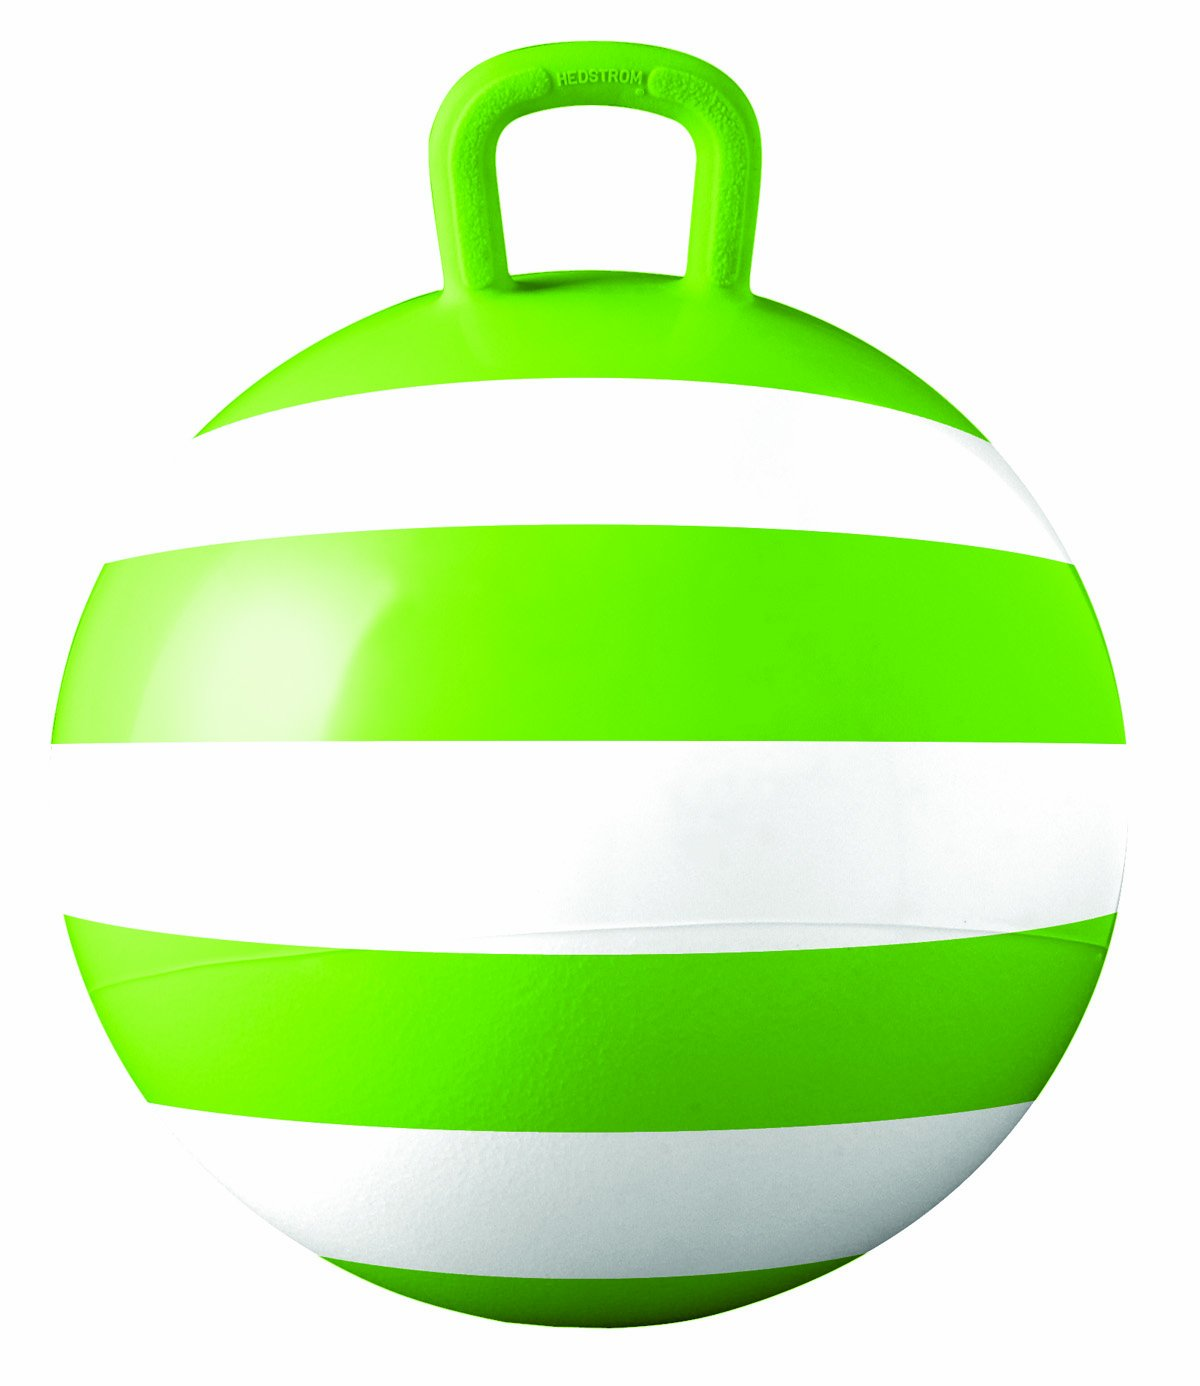 Hedstrom Green Striped Hopper Ball, Kid's Ride-on Toy, Bouncy Hopping Ball with Handle - 15 Inch